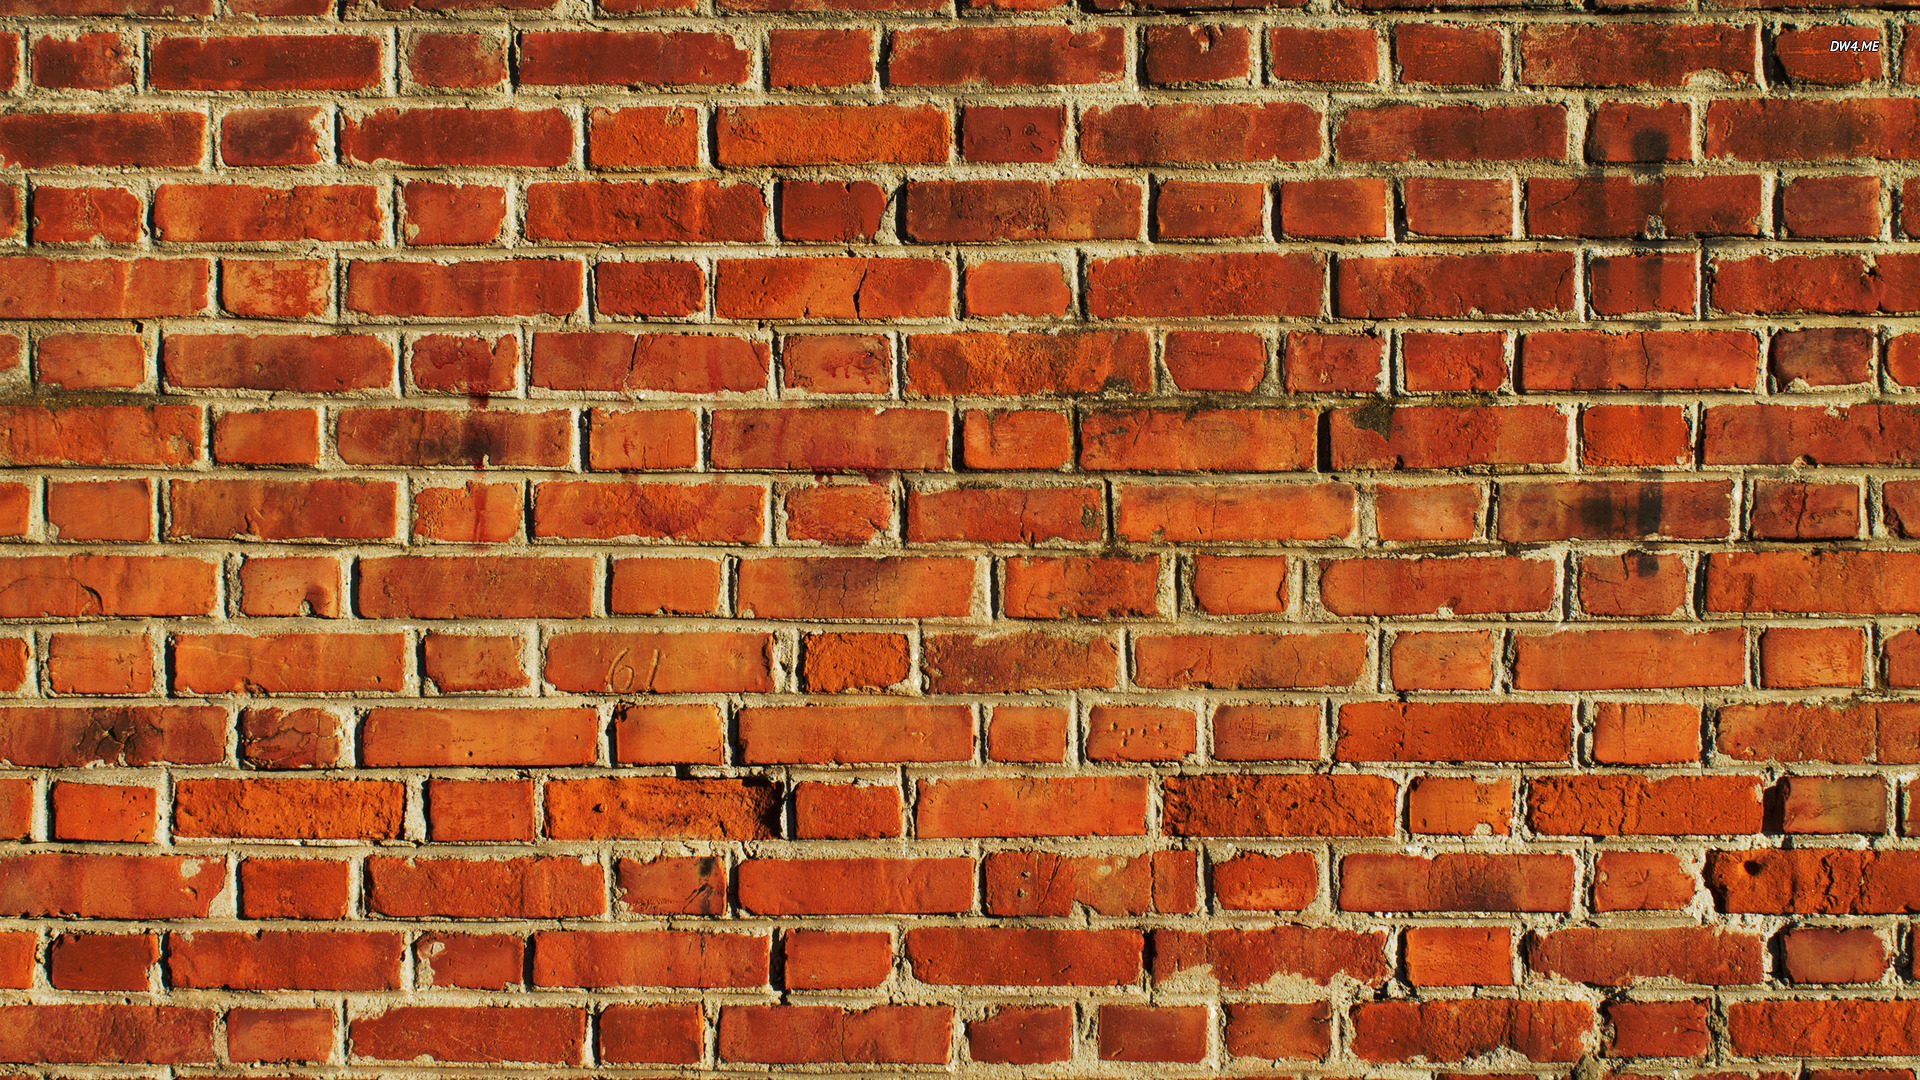 Wallpaper Brick Wall